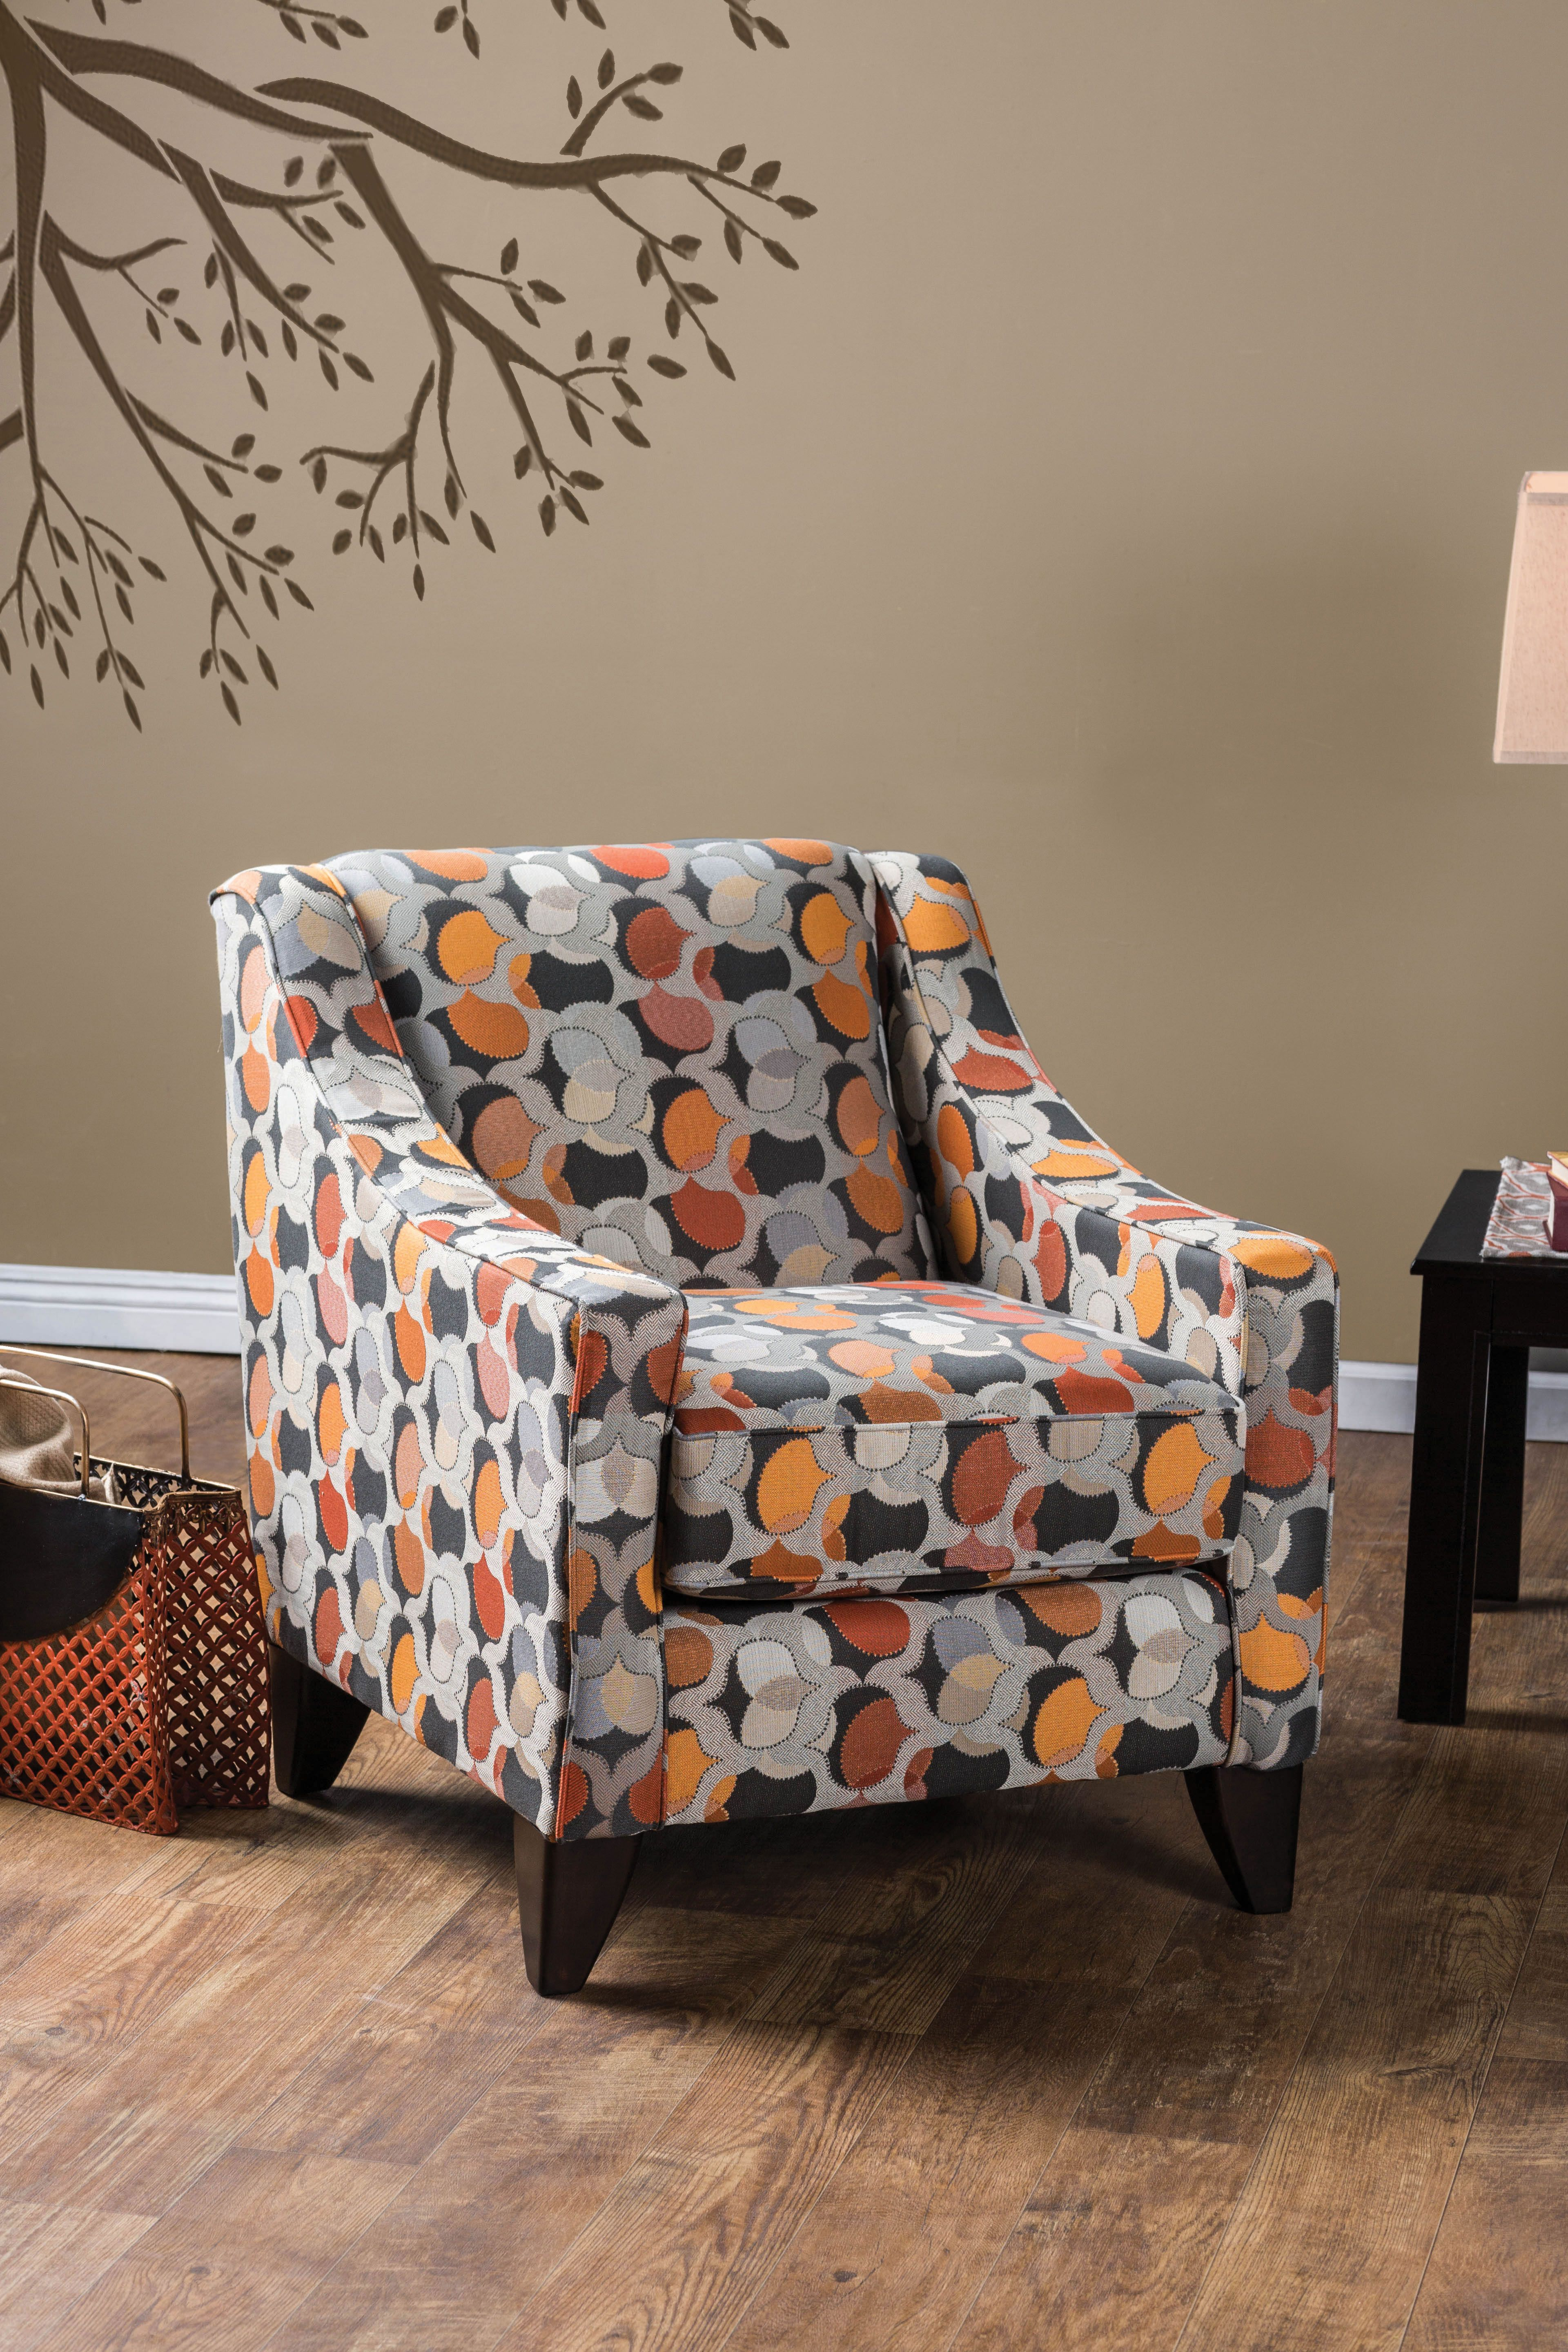 Beautiful Furniture Of America Parteena Premium Geometric Fabric Chair, Multi